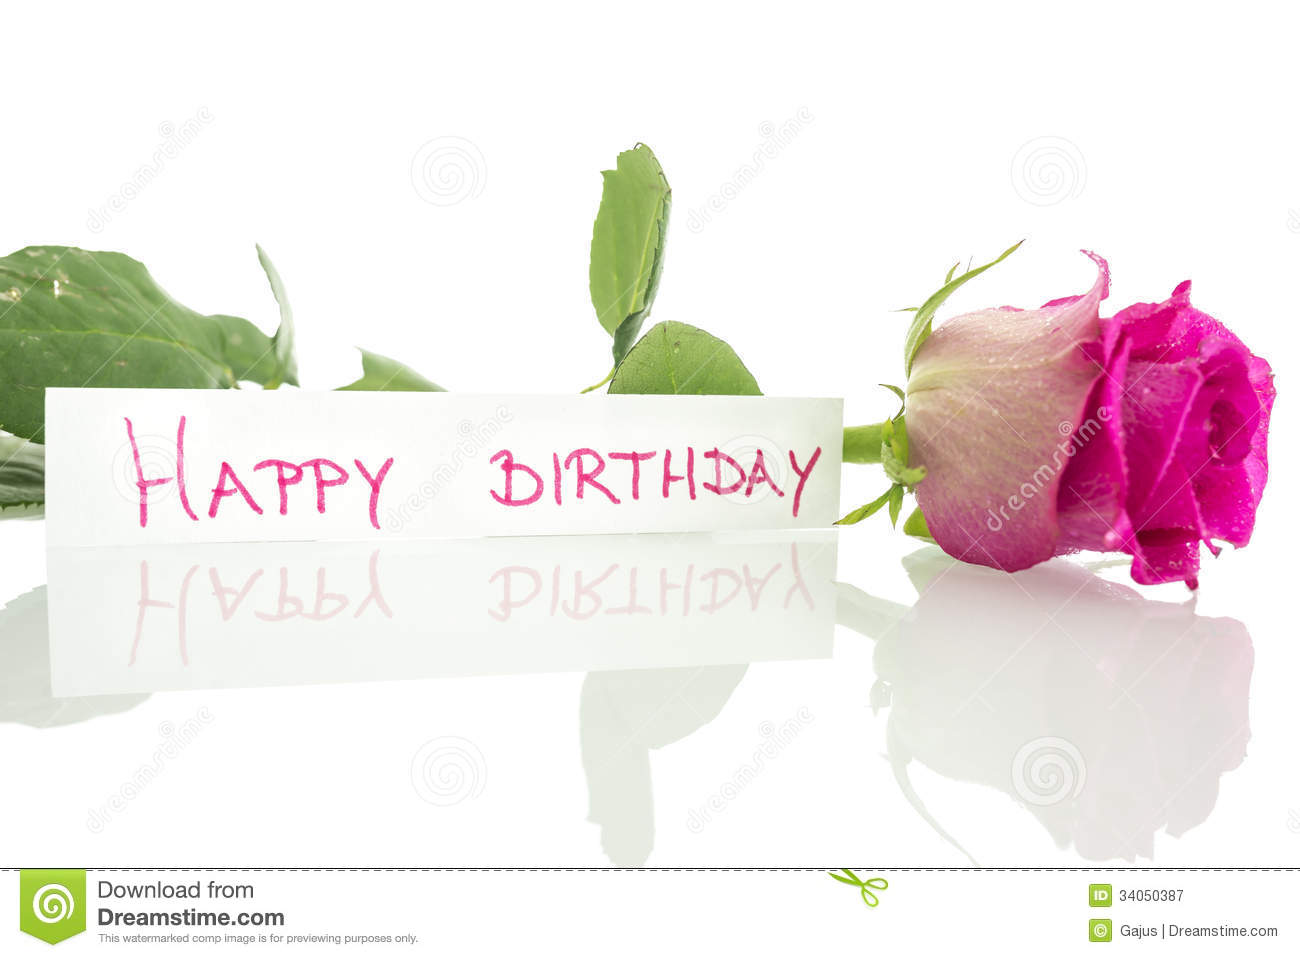 happy birthday picture message free download ; happy-birthday-message-leaning-beautiful-pink-rose-over-white-background-34050387